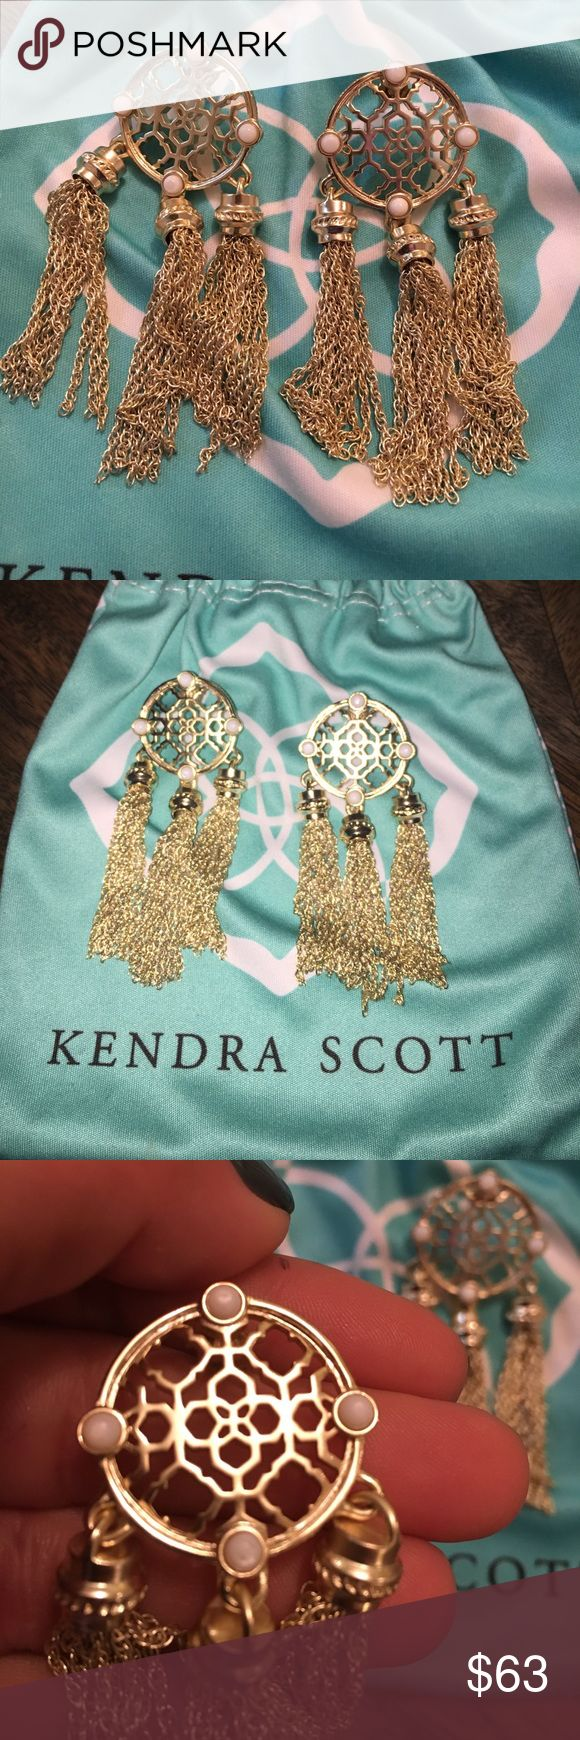 Kendra Scotts Adams earring Kendra scott gold earring. Round filigree at the top with 4 baby size mother of pearl stones with 3 drops of fringe hanging down. Worn a few times and in perfect condition- comes with dust bag! Kendra Scott Jewelry Earrings